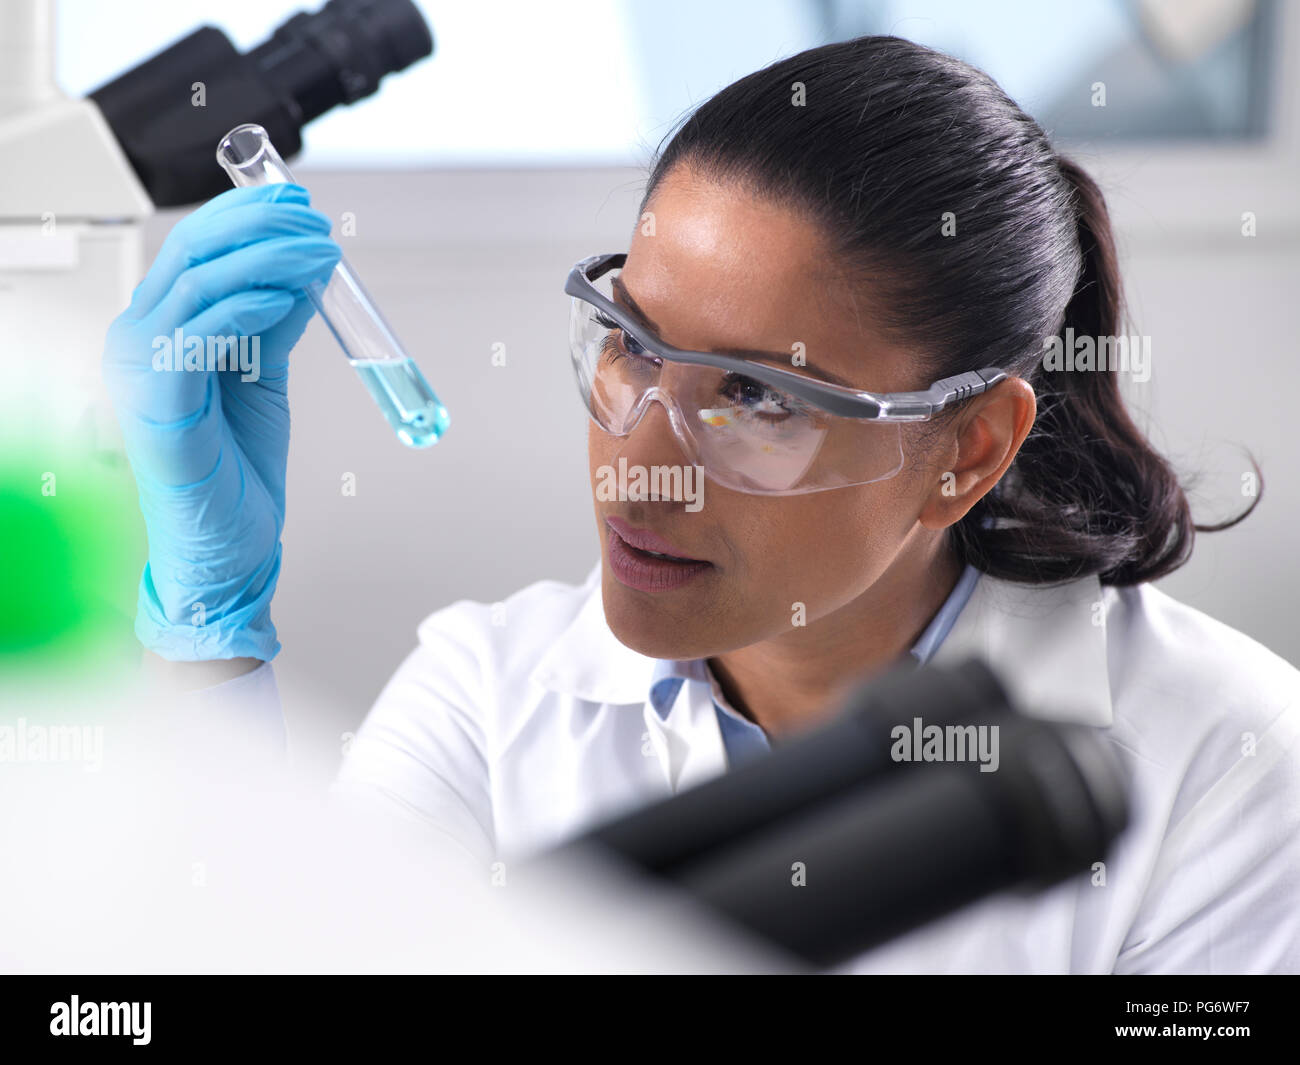 Biotechnology Research, female scientist mixing a chemical formula - Stock Image